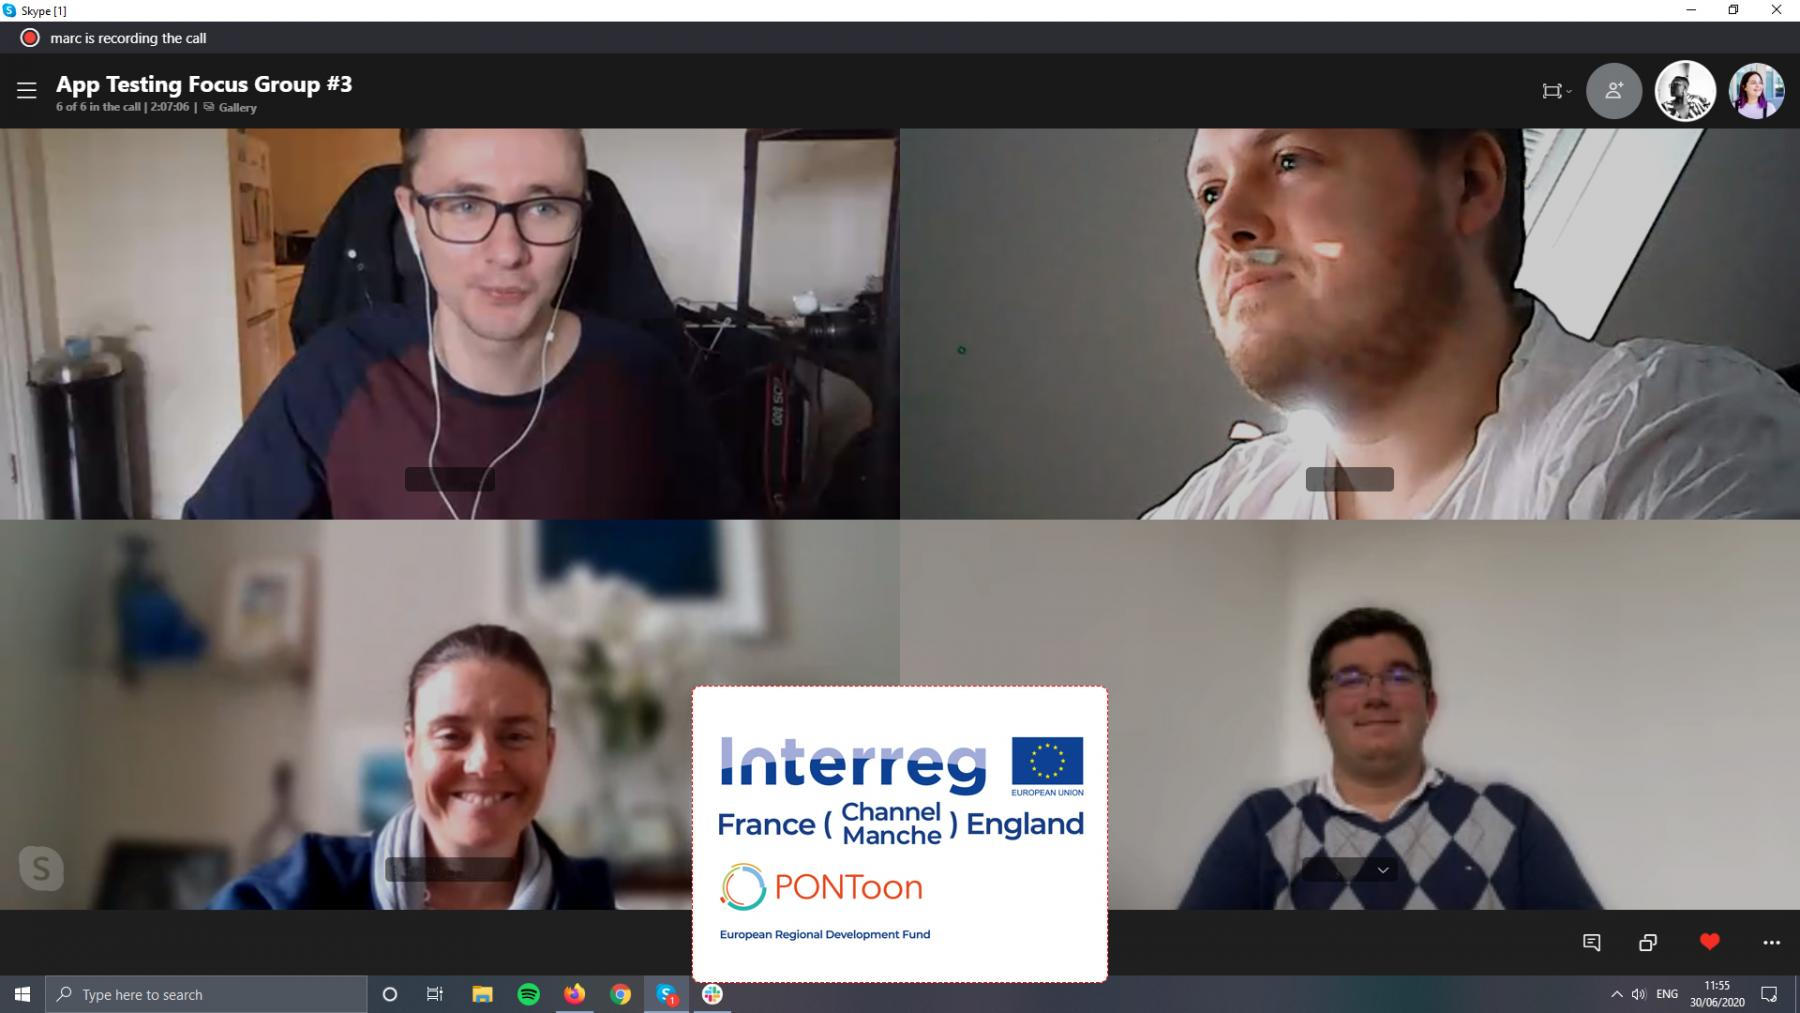 colleagues from 4 different PONToon partner organisations participate in a video call to discuss the PONToon digital tools